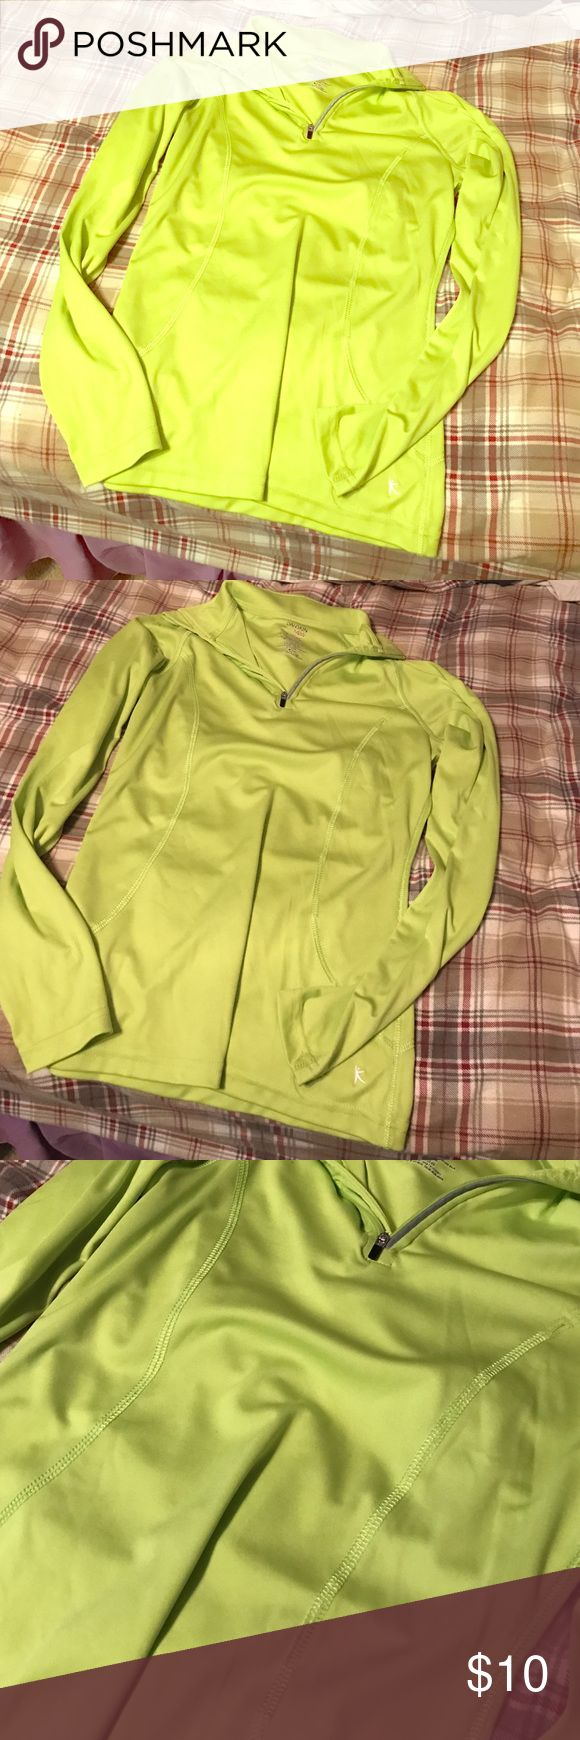 Small lime green shirt Small lime green athletic dri fit shirt Tops Tees - Long Sleeve